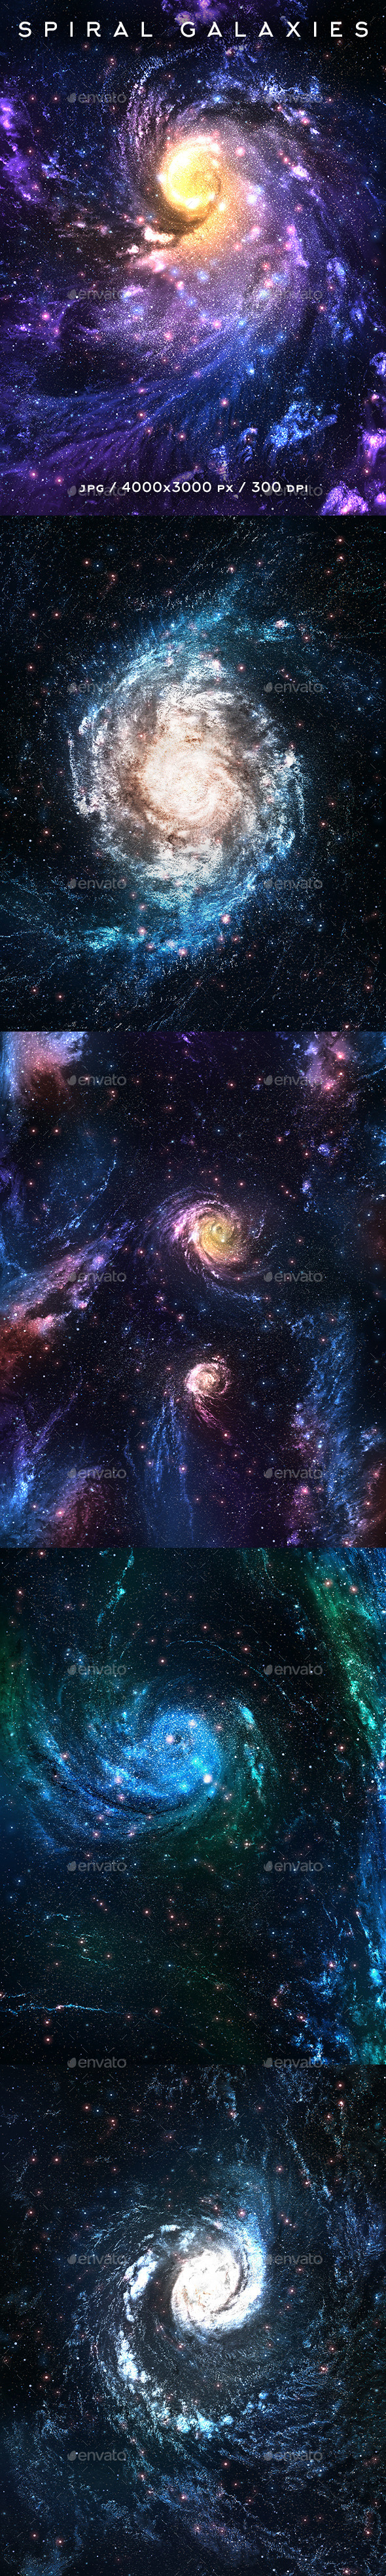 GraphicRiver Spiral Galaxies 10601411